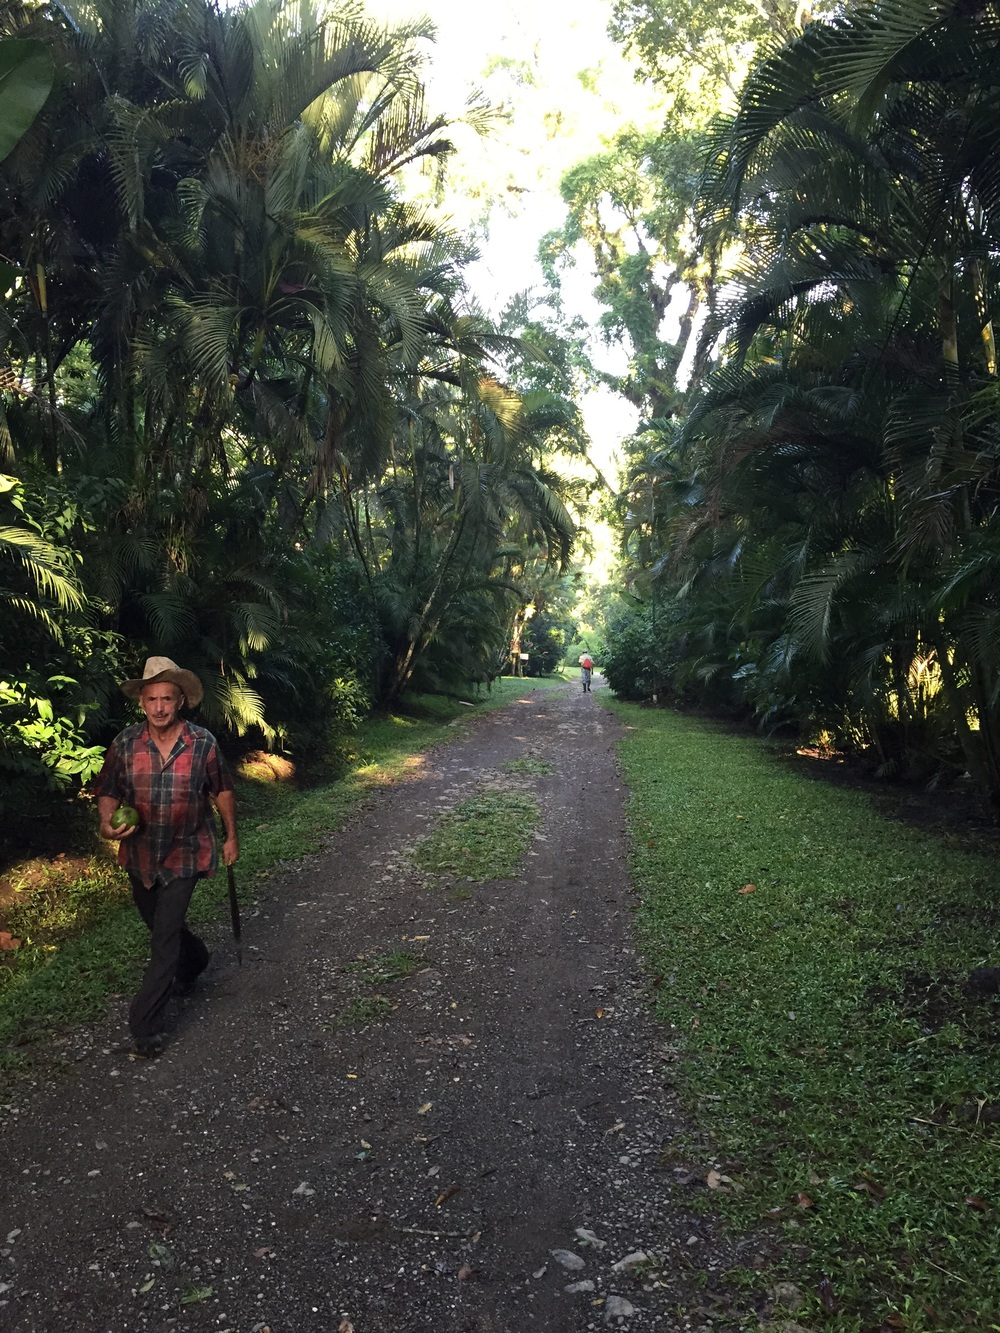 Coffee farmer in Honduras shortly after sunrise. There are no tours or tastings but there are trails to walk.